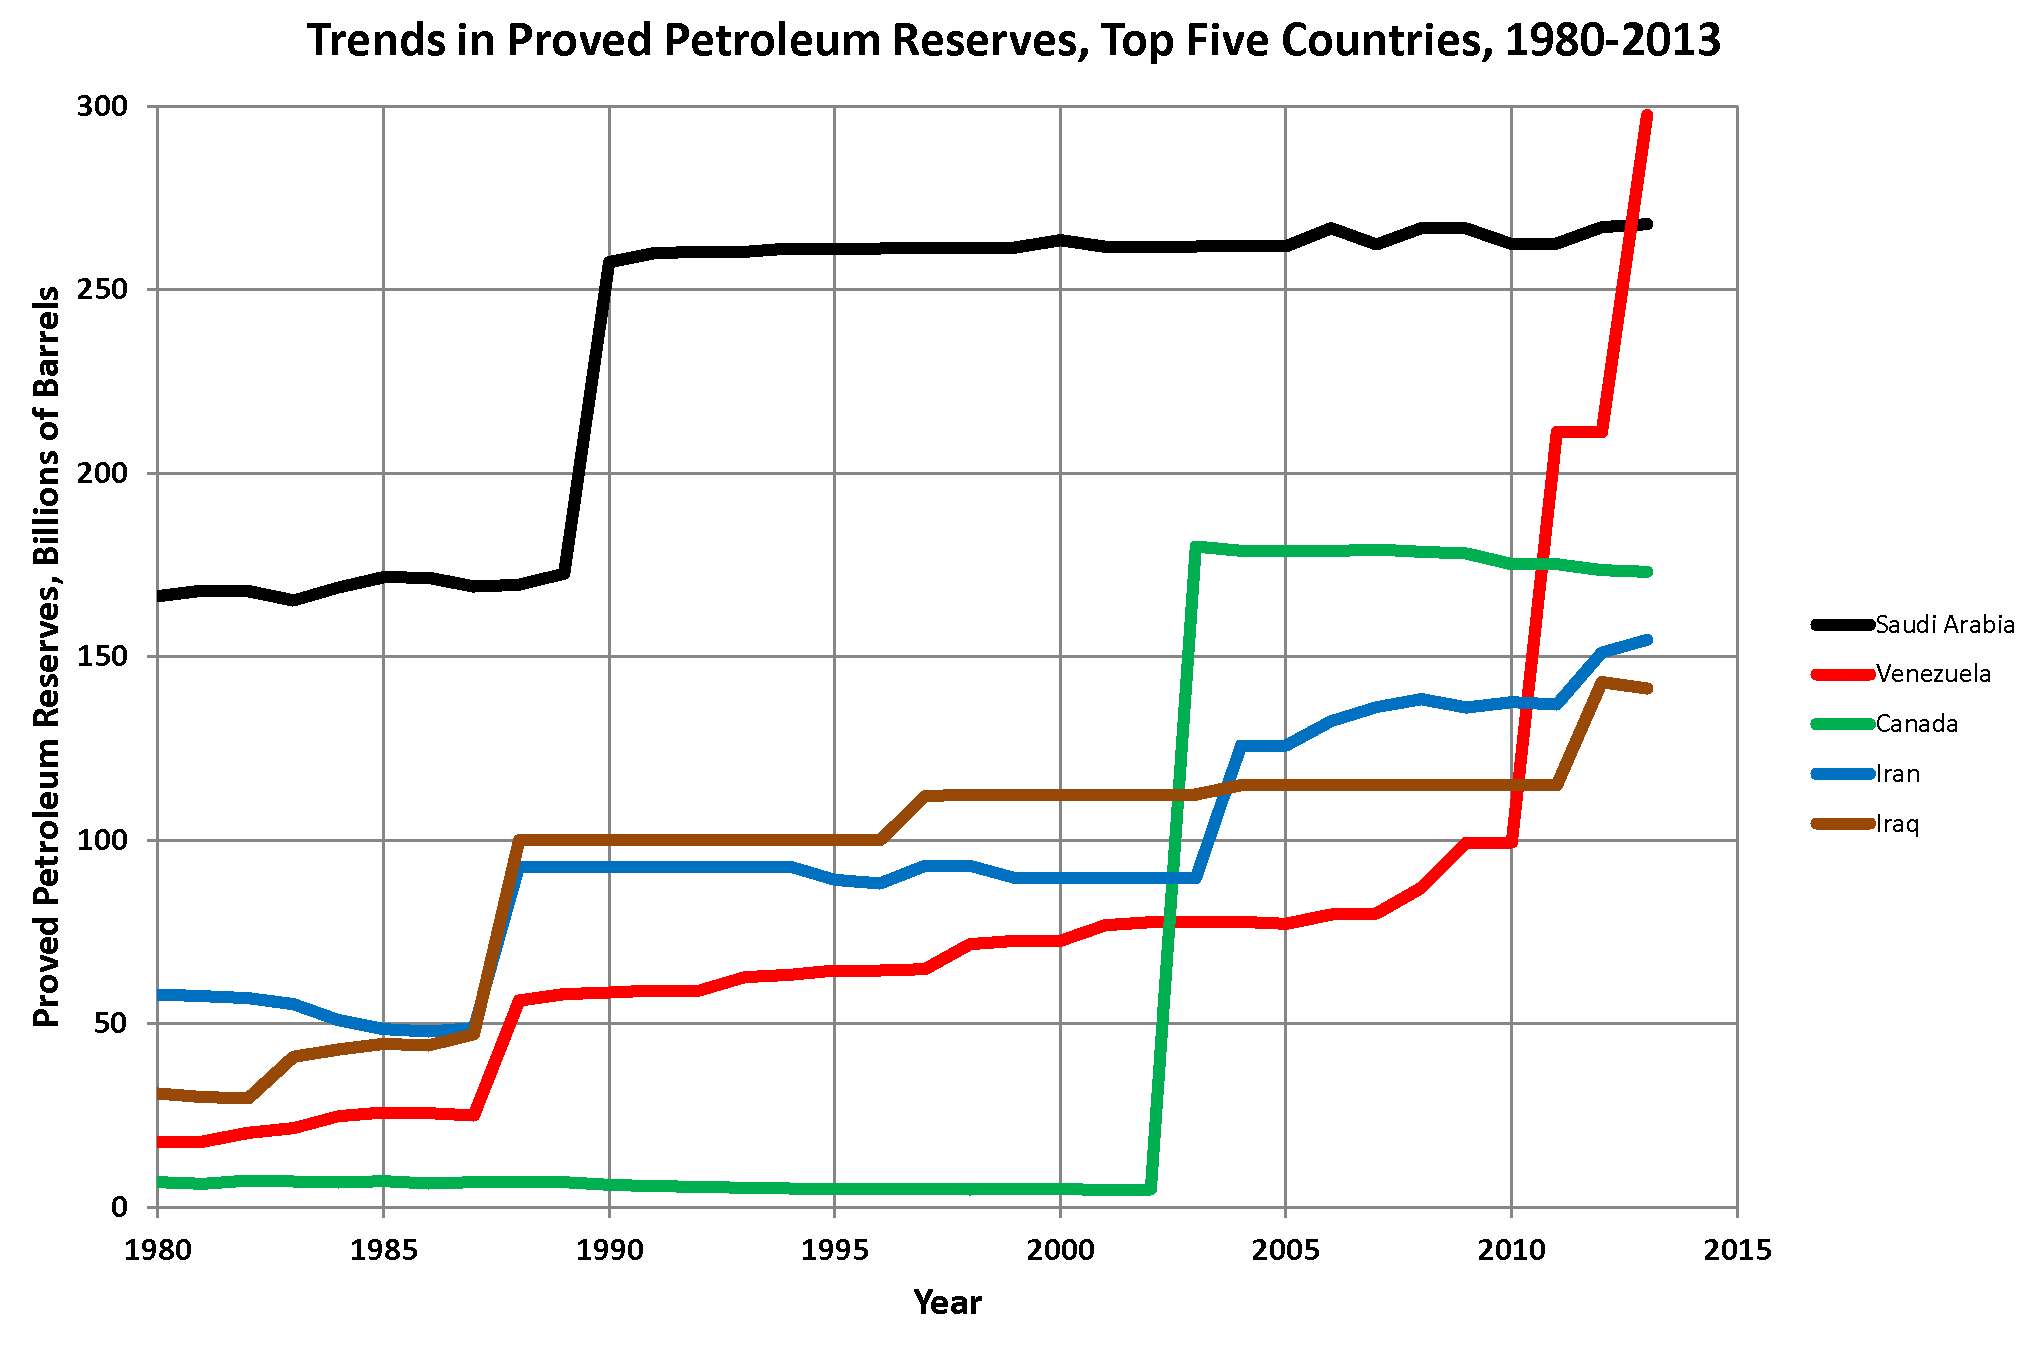 https://upload.wikimedia.org/wikipedia/commons/b/b4/Oil_Reserves_Top_5_Countries.png